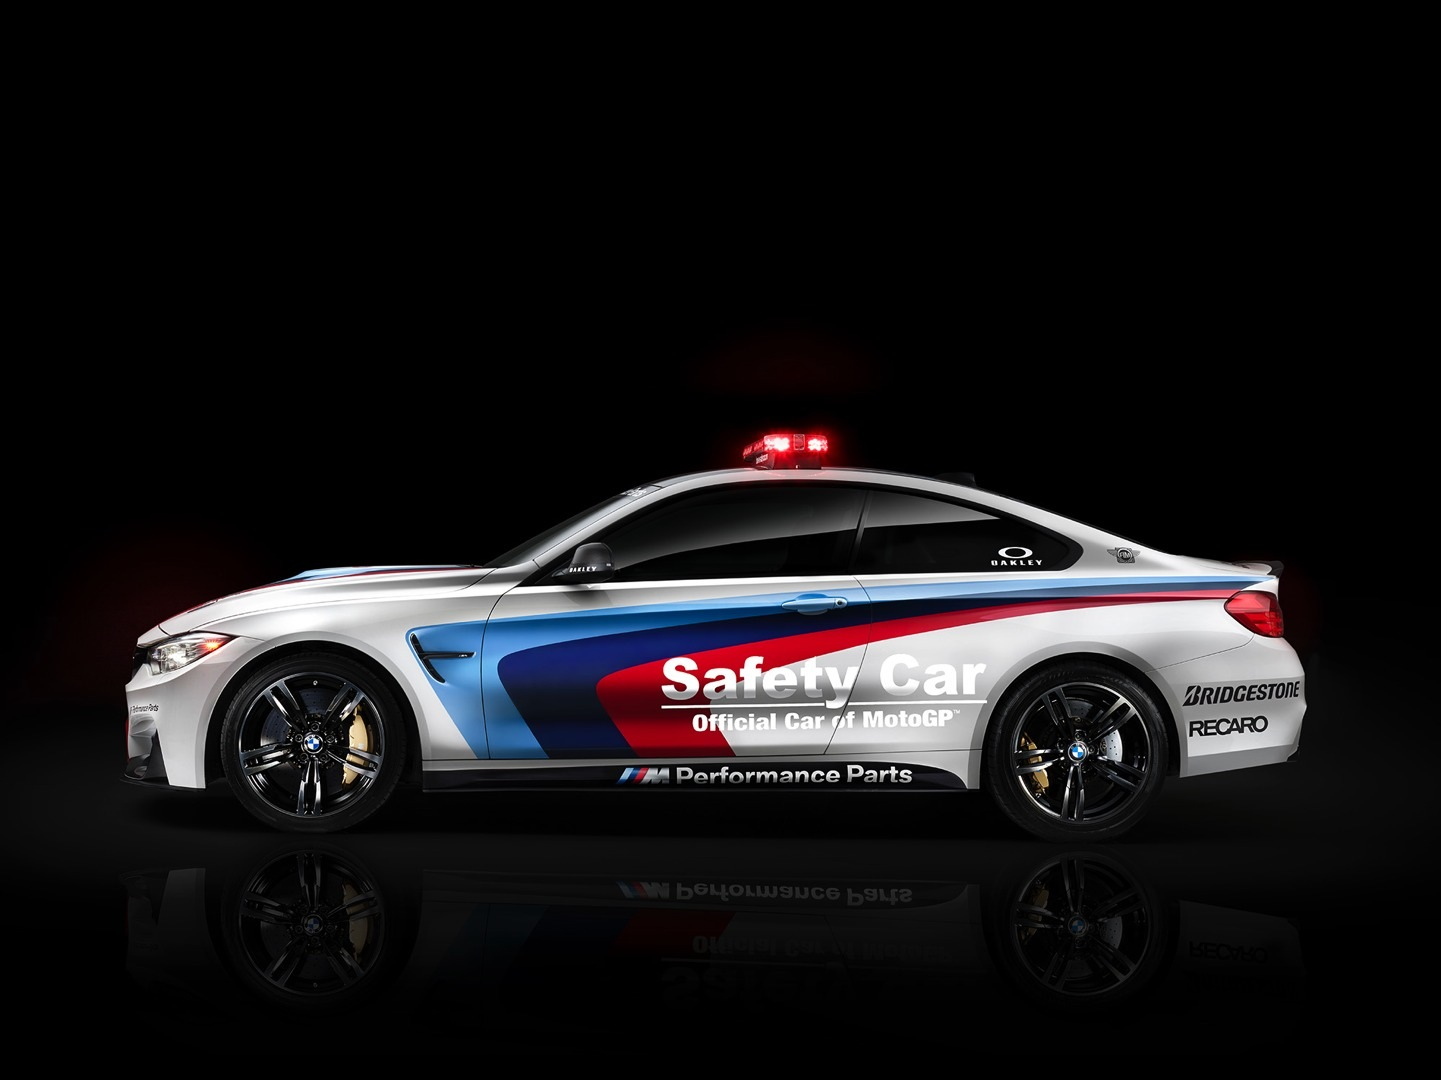 m4 bmw coupe safety motogp revealed autoevolution racing parts pace